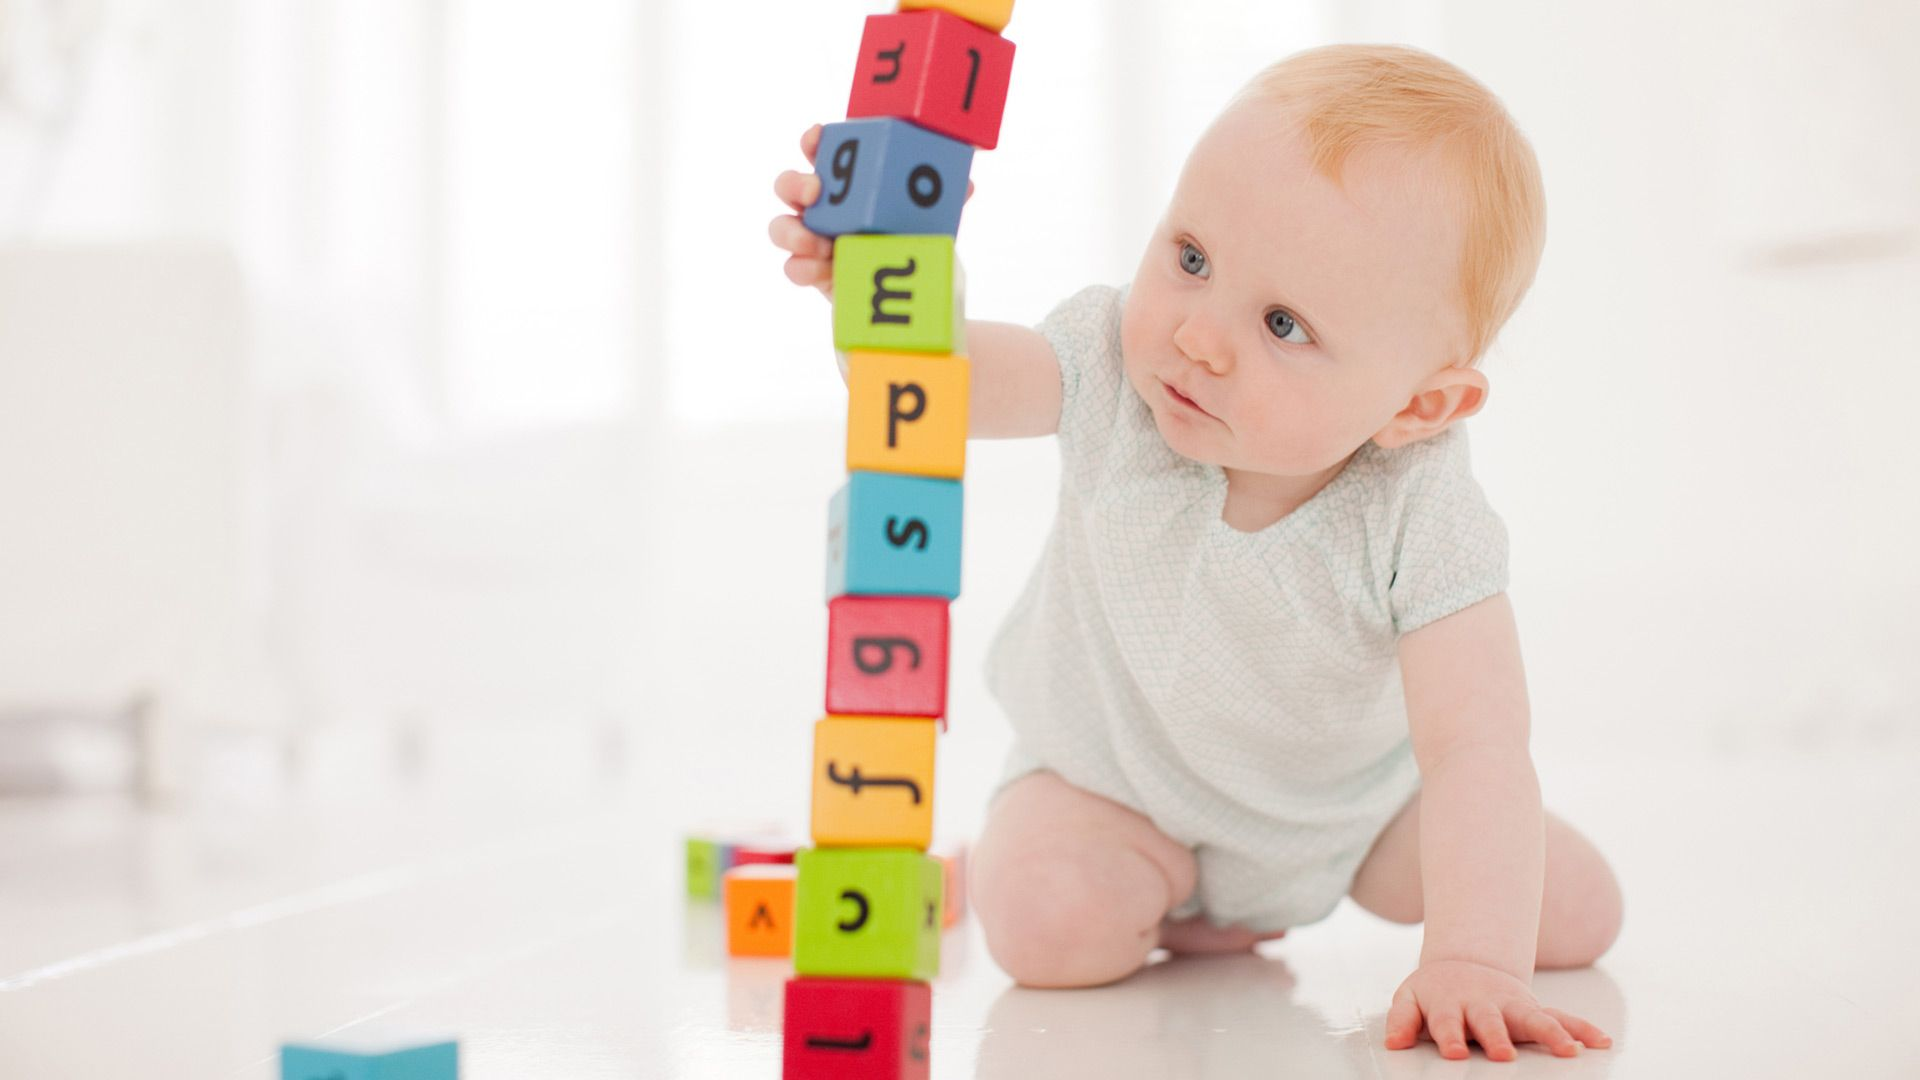 Toys images with names  Baby names A to Z  Parenting articles Babies and Pregnancy